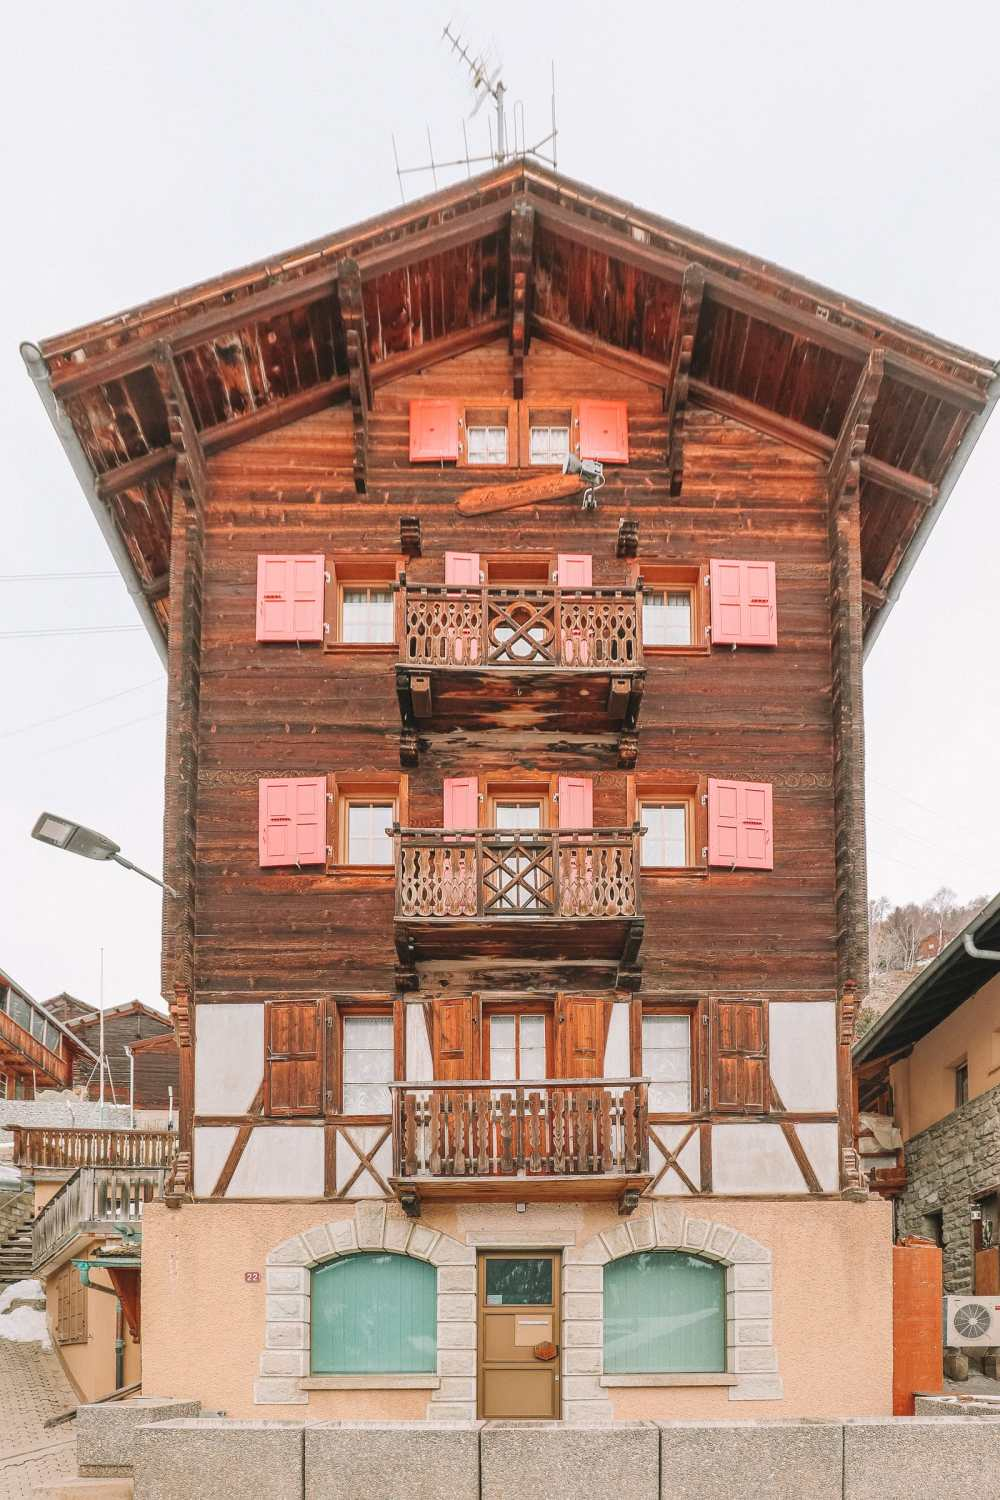 Exploring Swiss Villages In Saint Martin, Valais... (31)